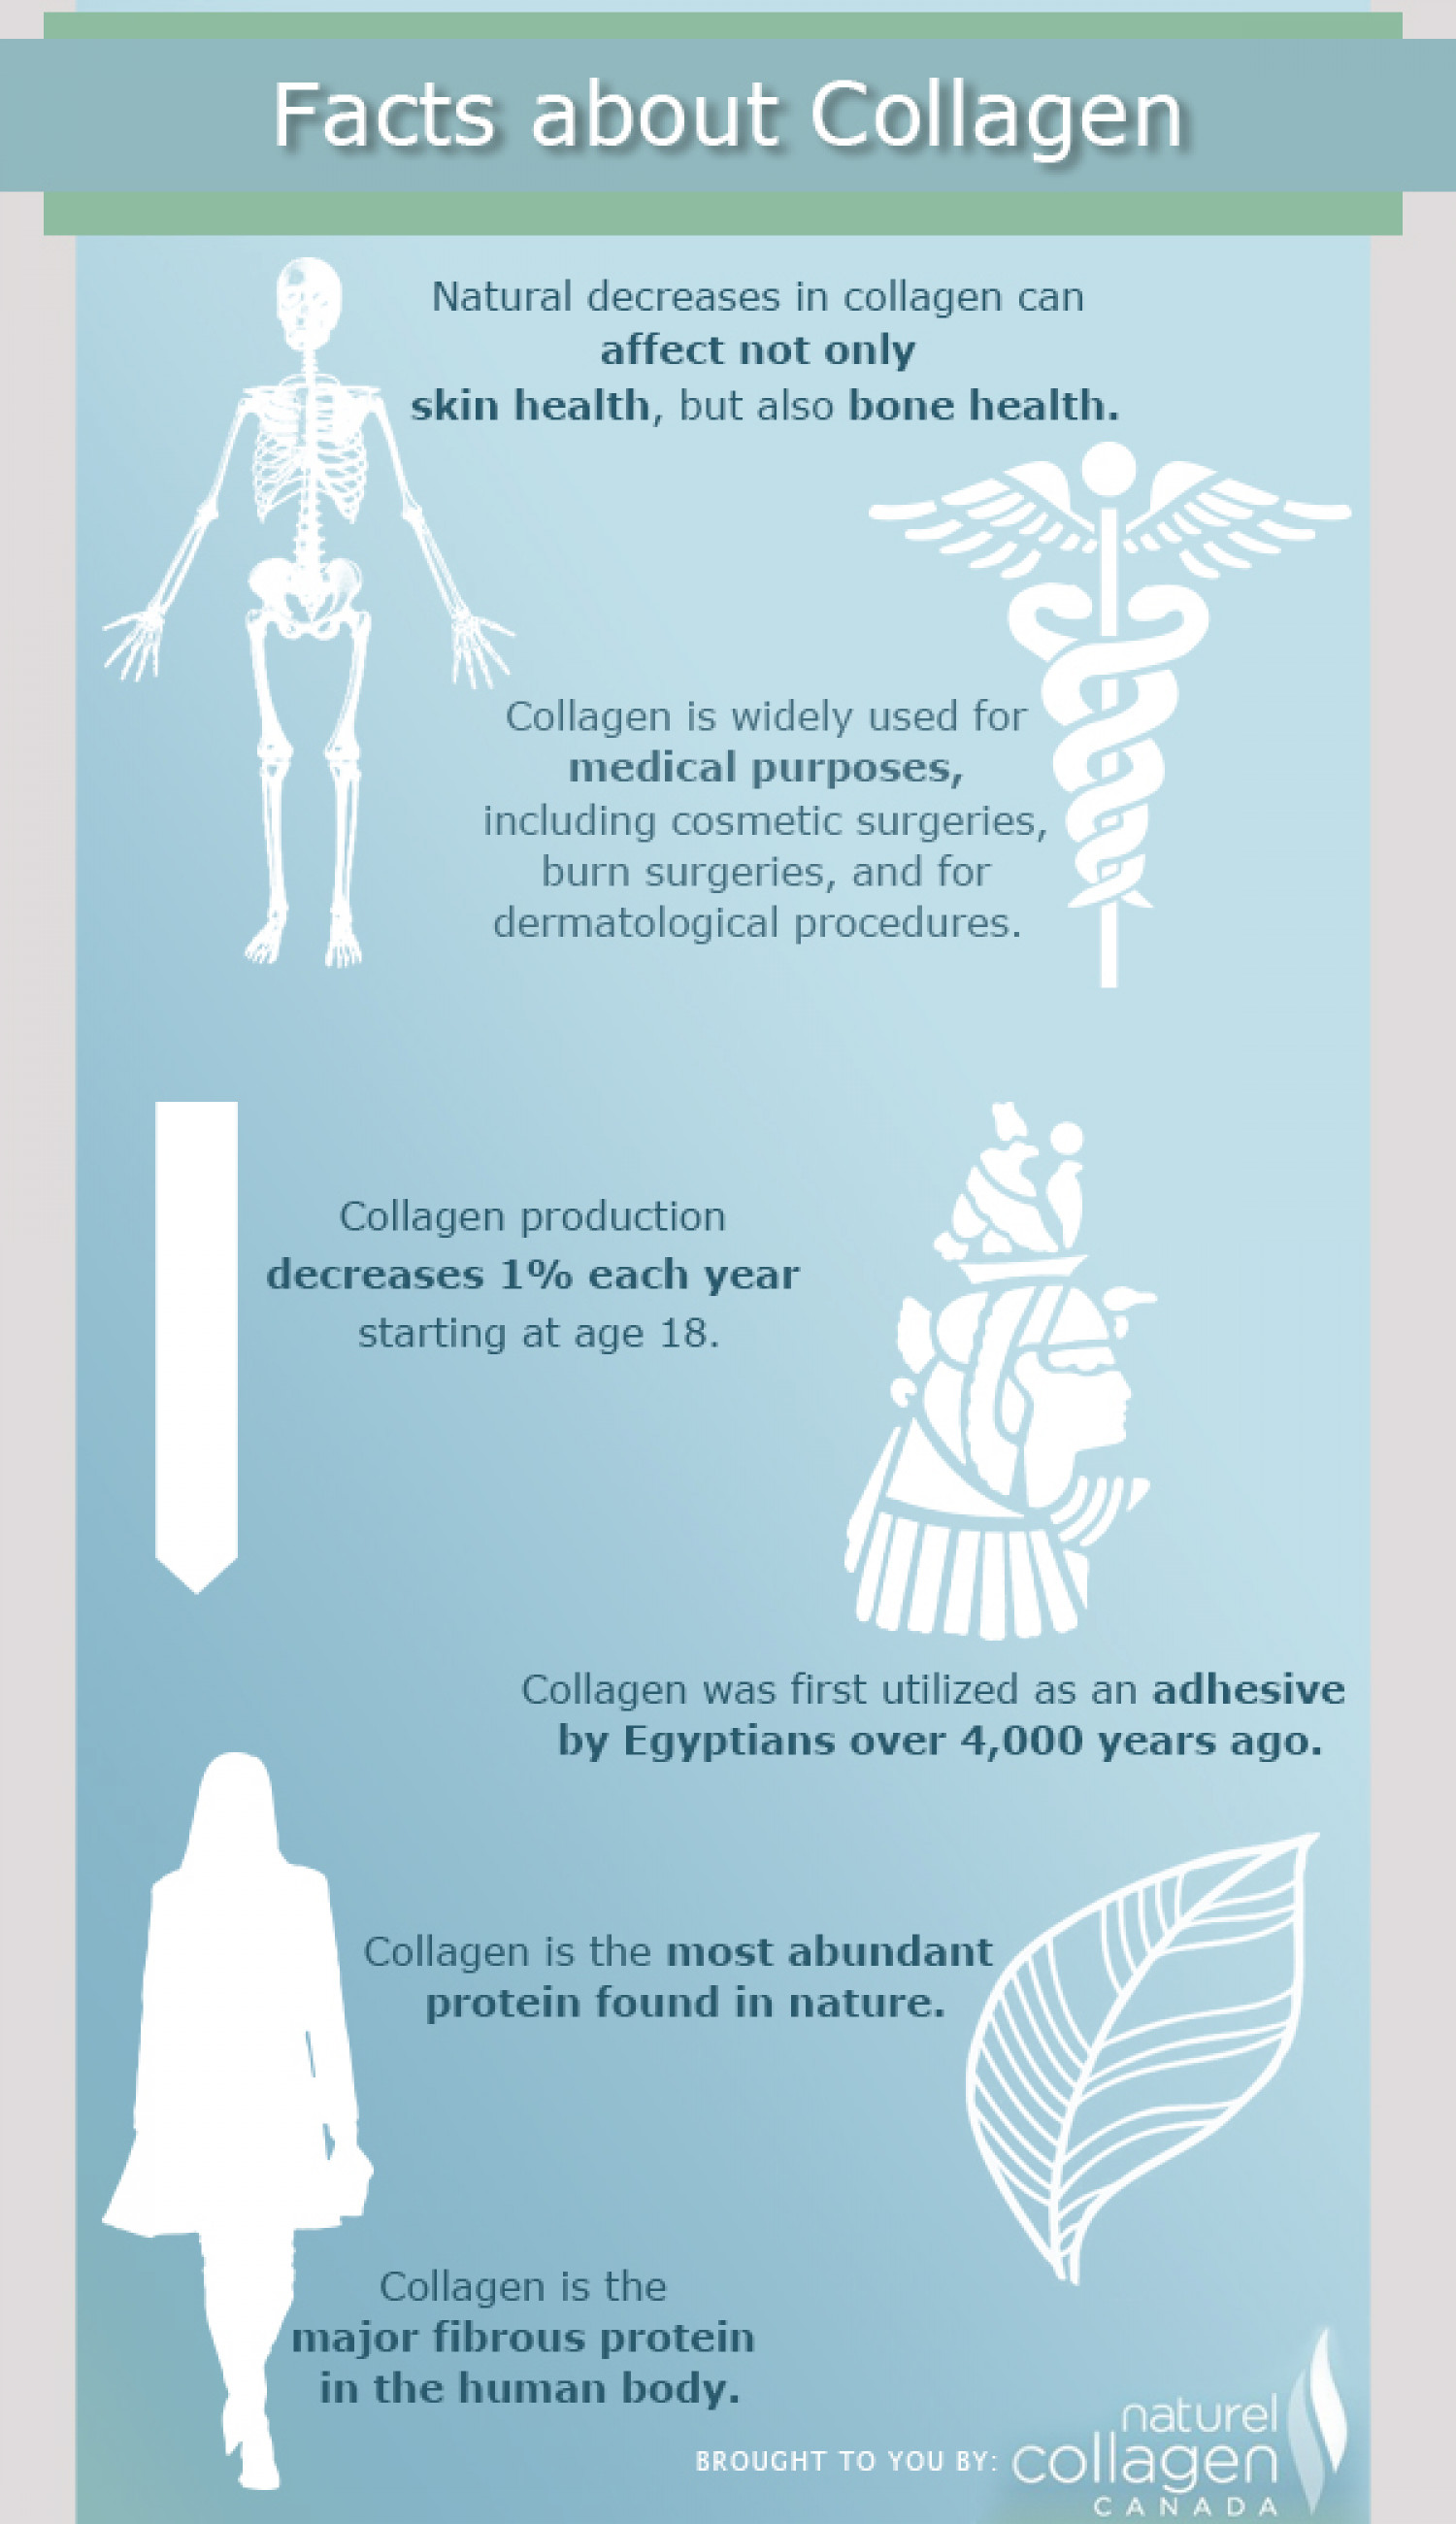 Facts About Collagen Infographic